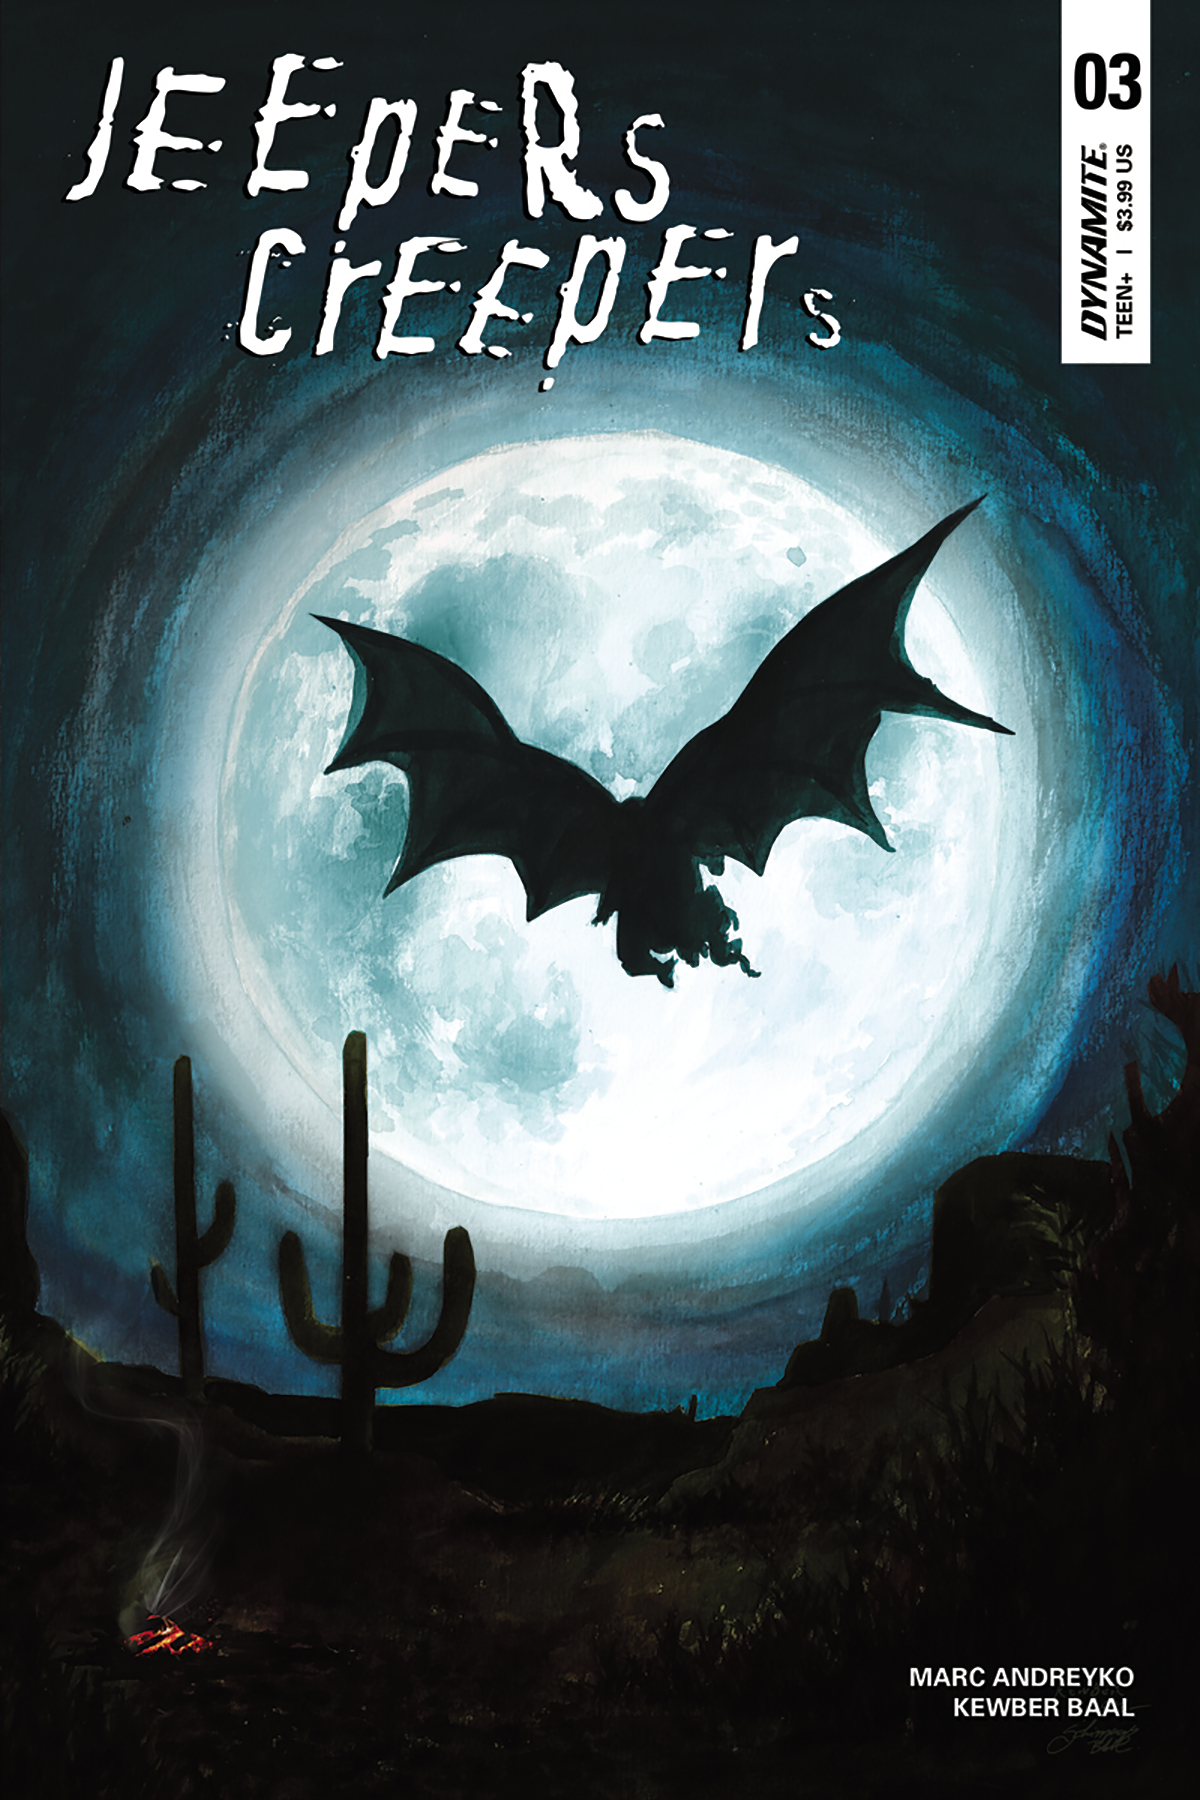 JEEPERS CREEPERS #3 CVR B BAAL